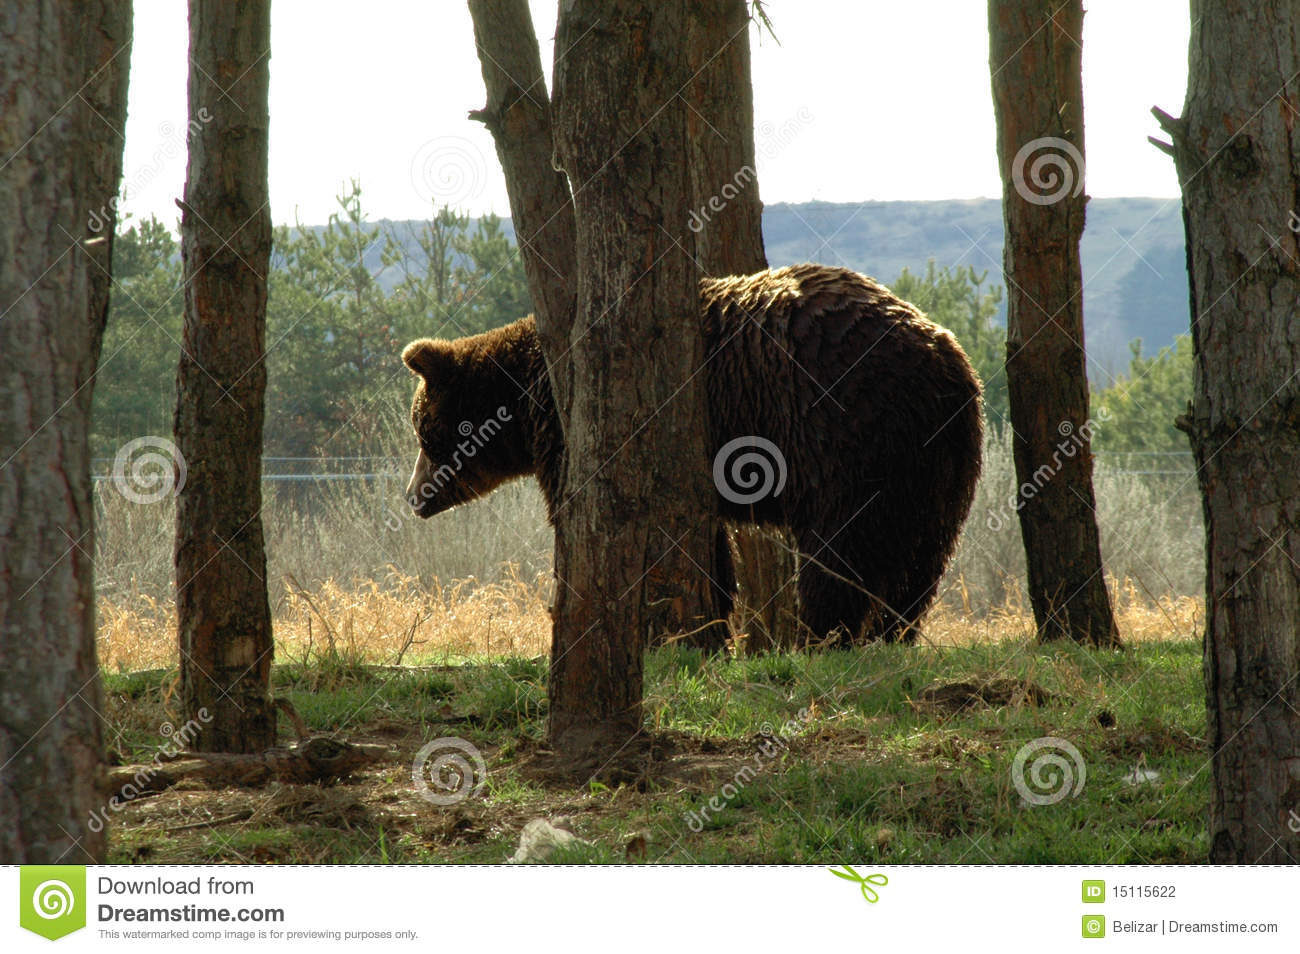 Urso na borda da floresta